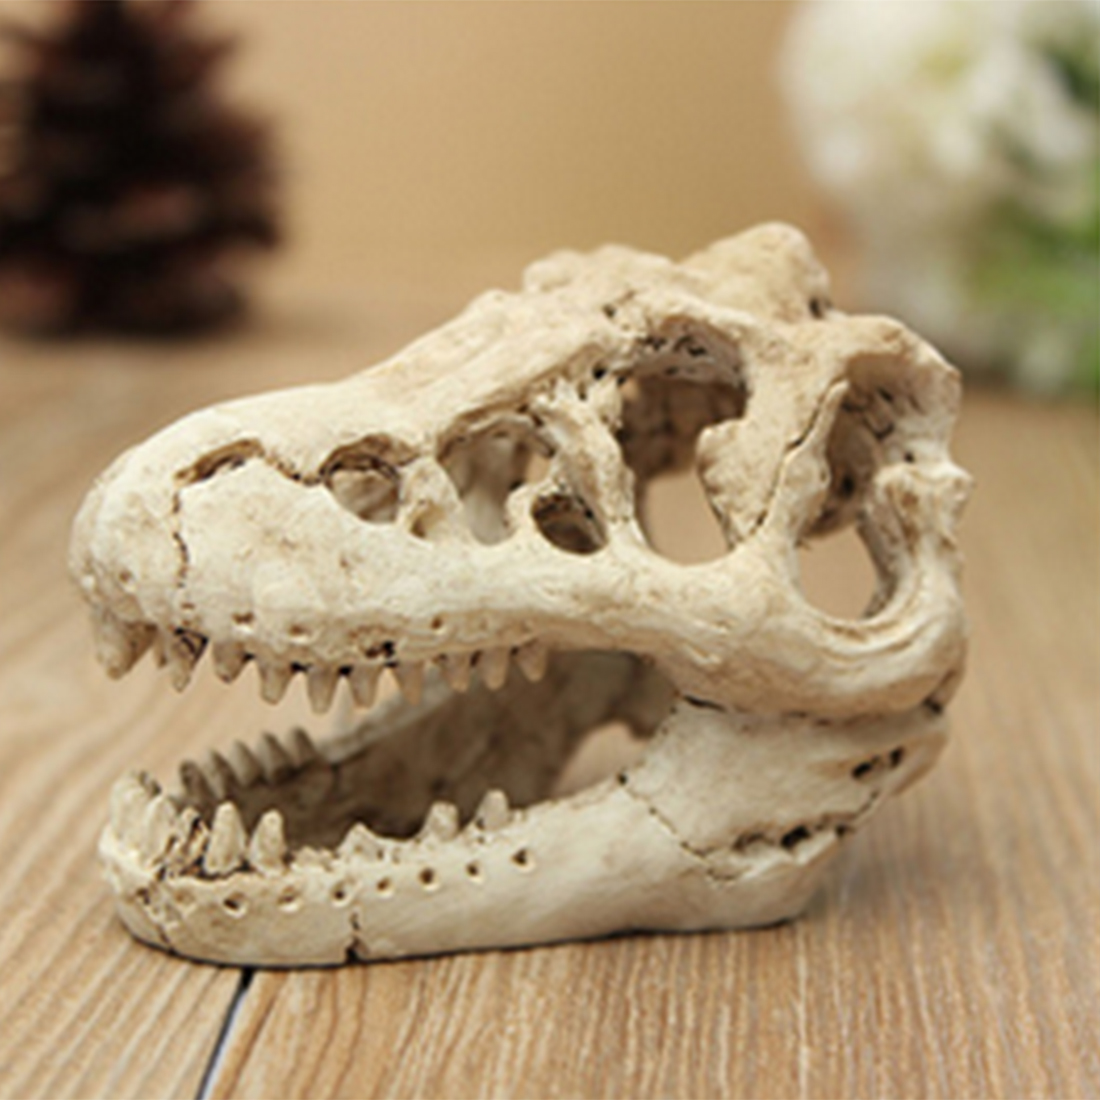 US $3.25 21% OFF|Dinosaur Skull Shape Aquarium Crawler Box Landscaping Decor   S-in Habitat Decor from Home & Garden on AliExpress - 11.11_Double 11_Singles' Day